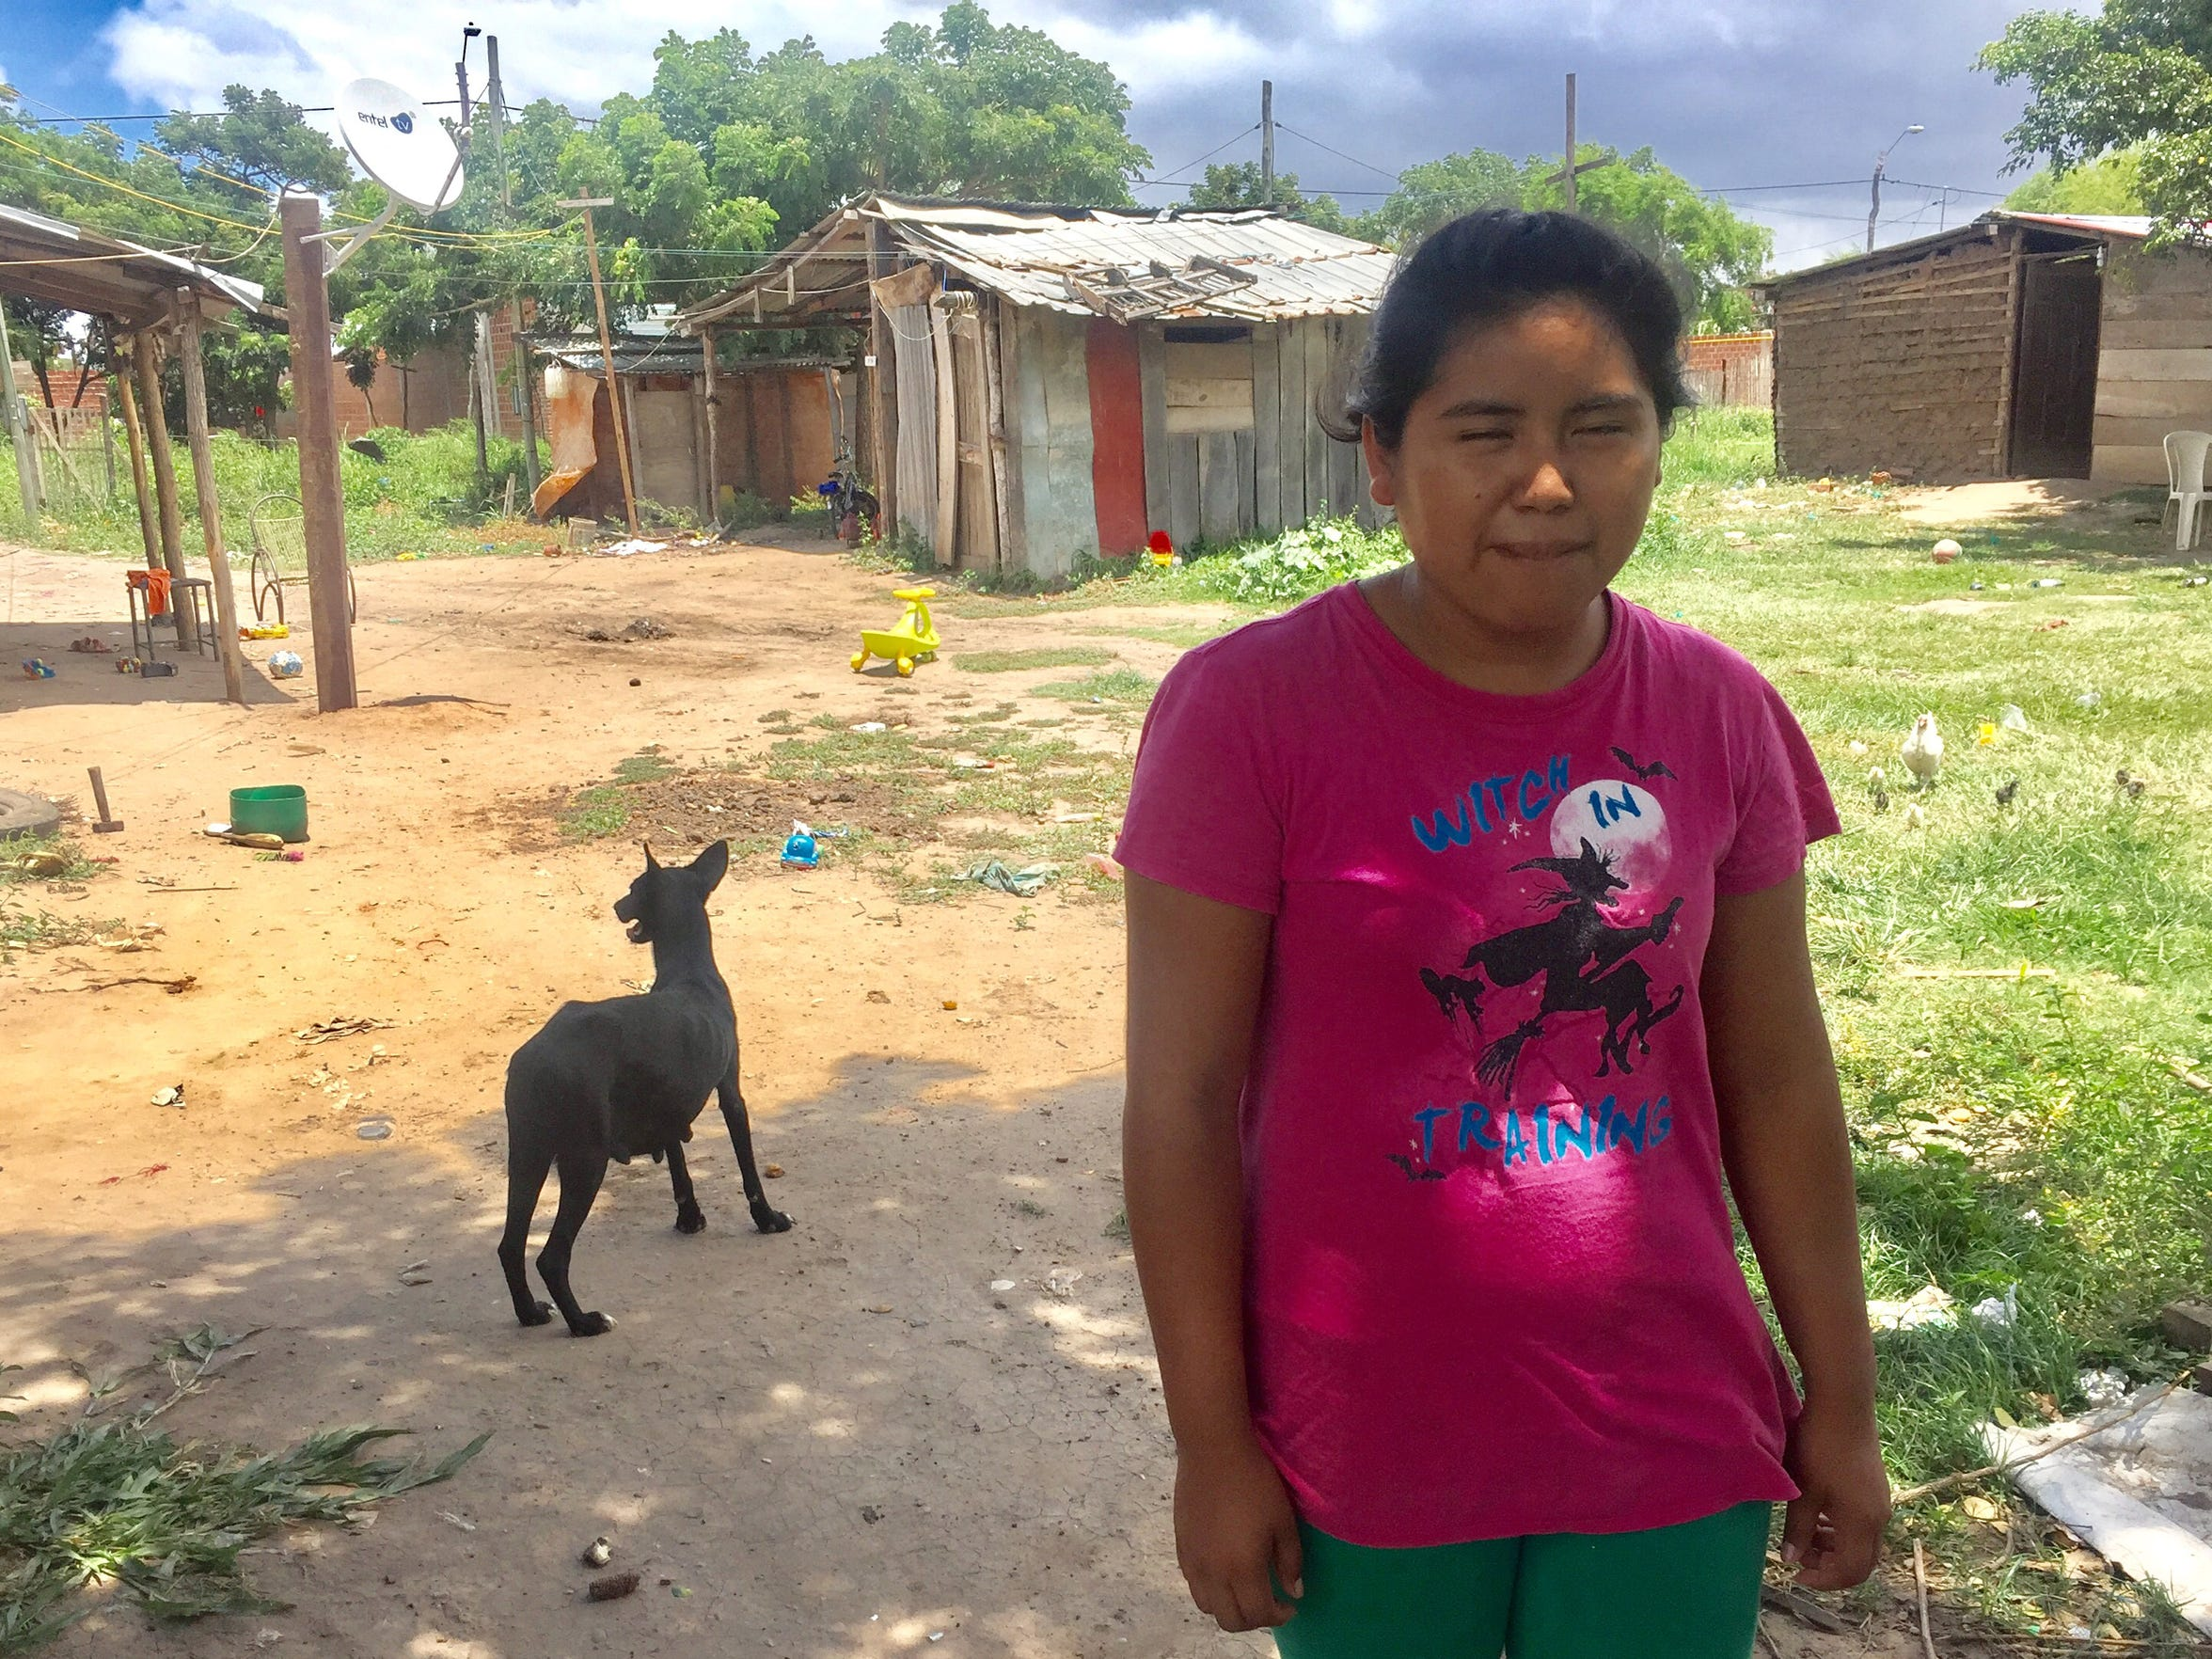 Rossi, 16, seen here in her Ayoreo village near Santa Cruz de la Sierra, Bolivia, wants to become a teacher. She's a good student, and her mentors say she has a solid chance of achieving her goal.